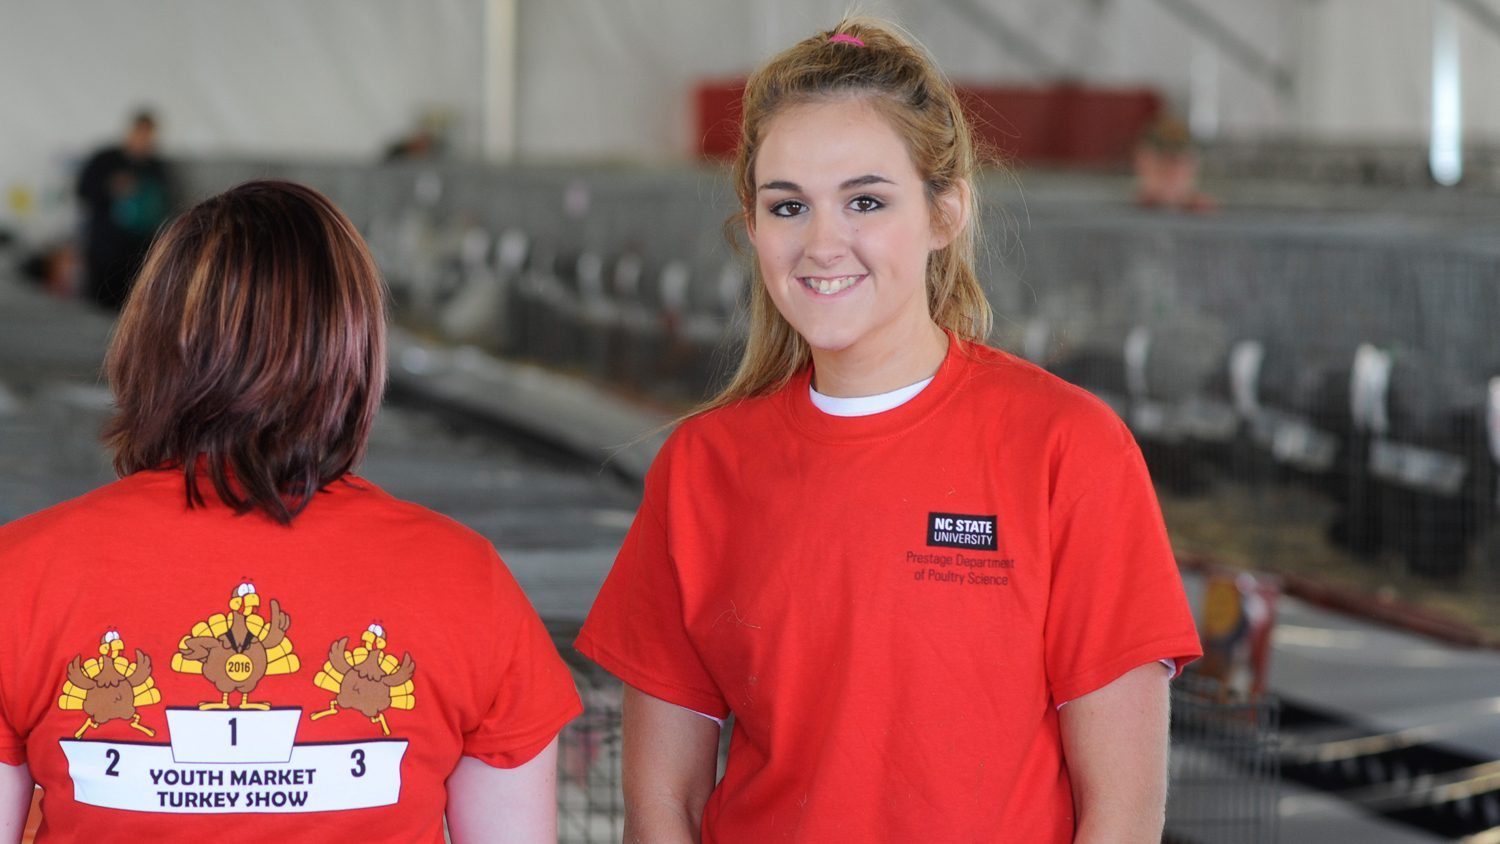 NC State students at the North Carolina State Fair's turkey exhibit